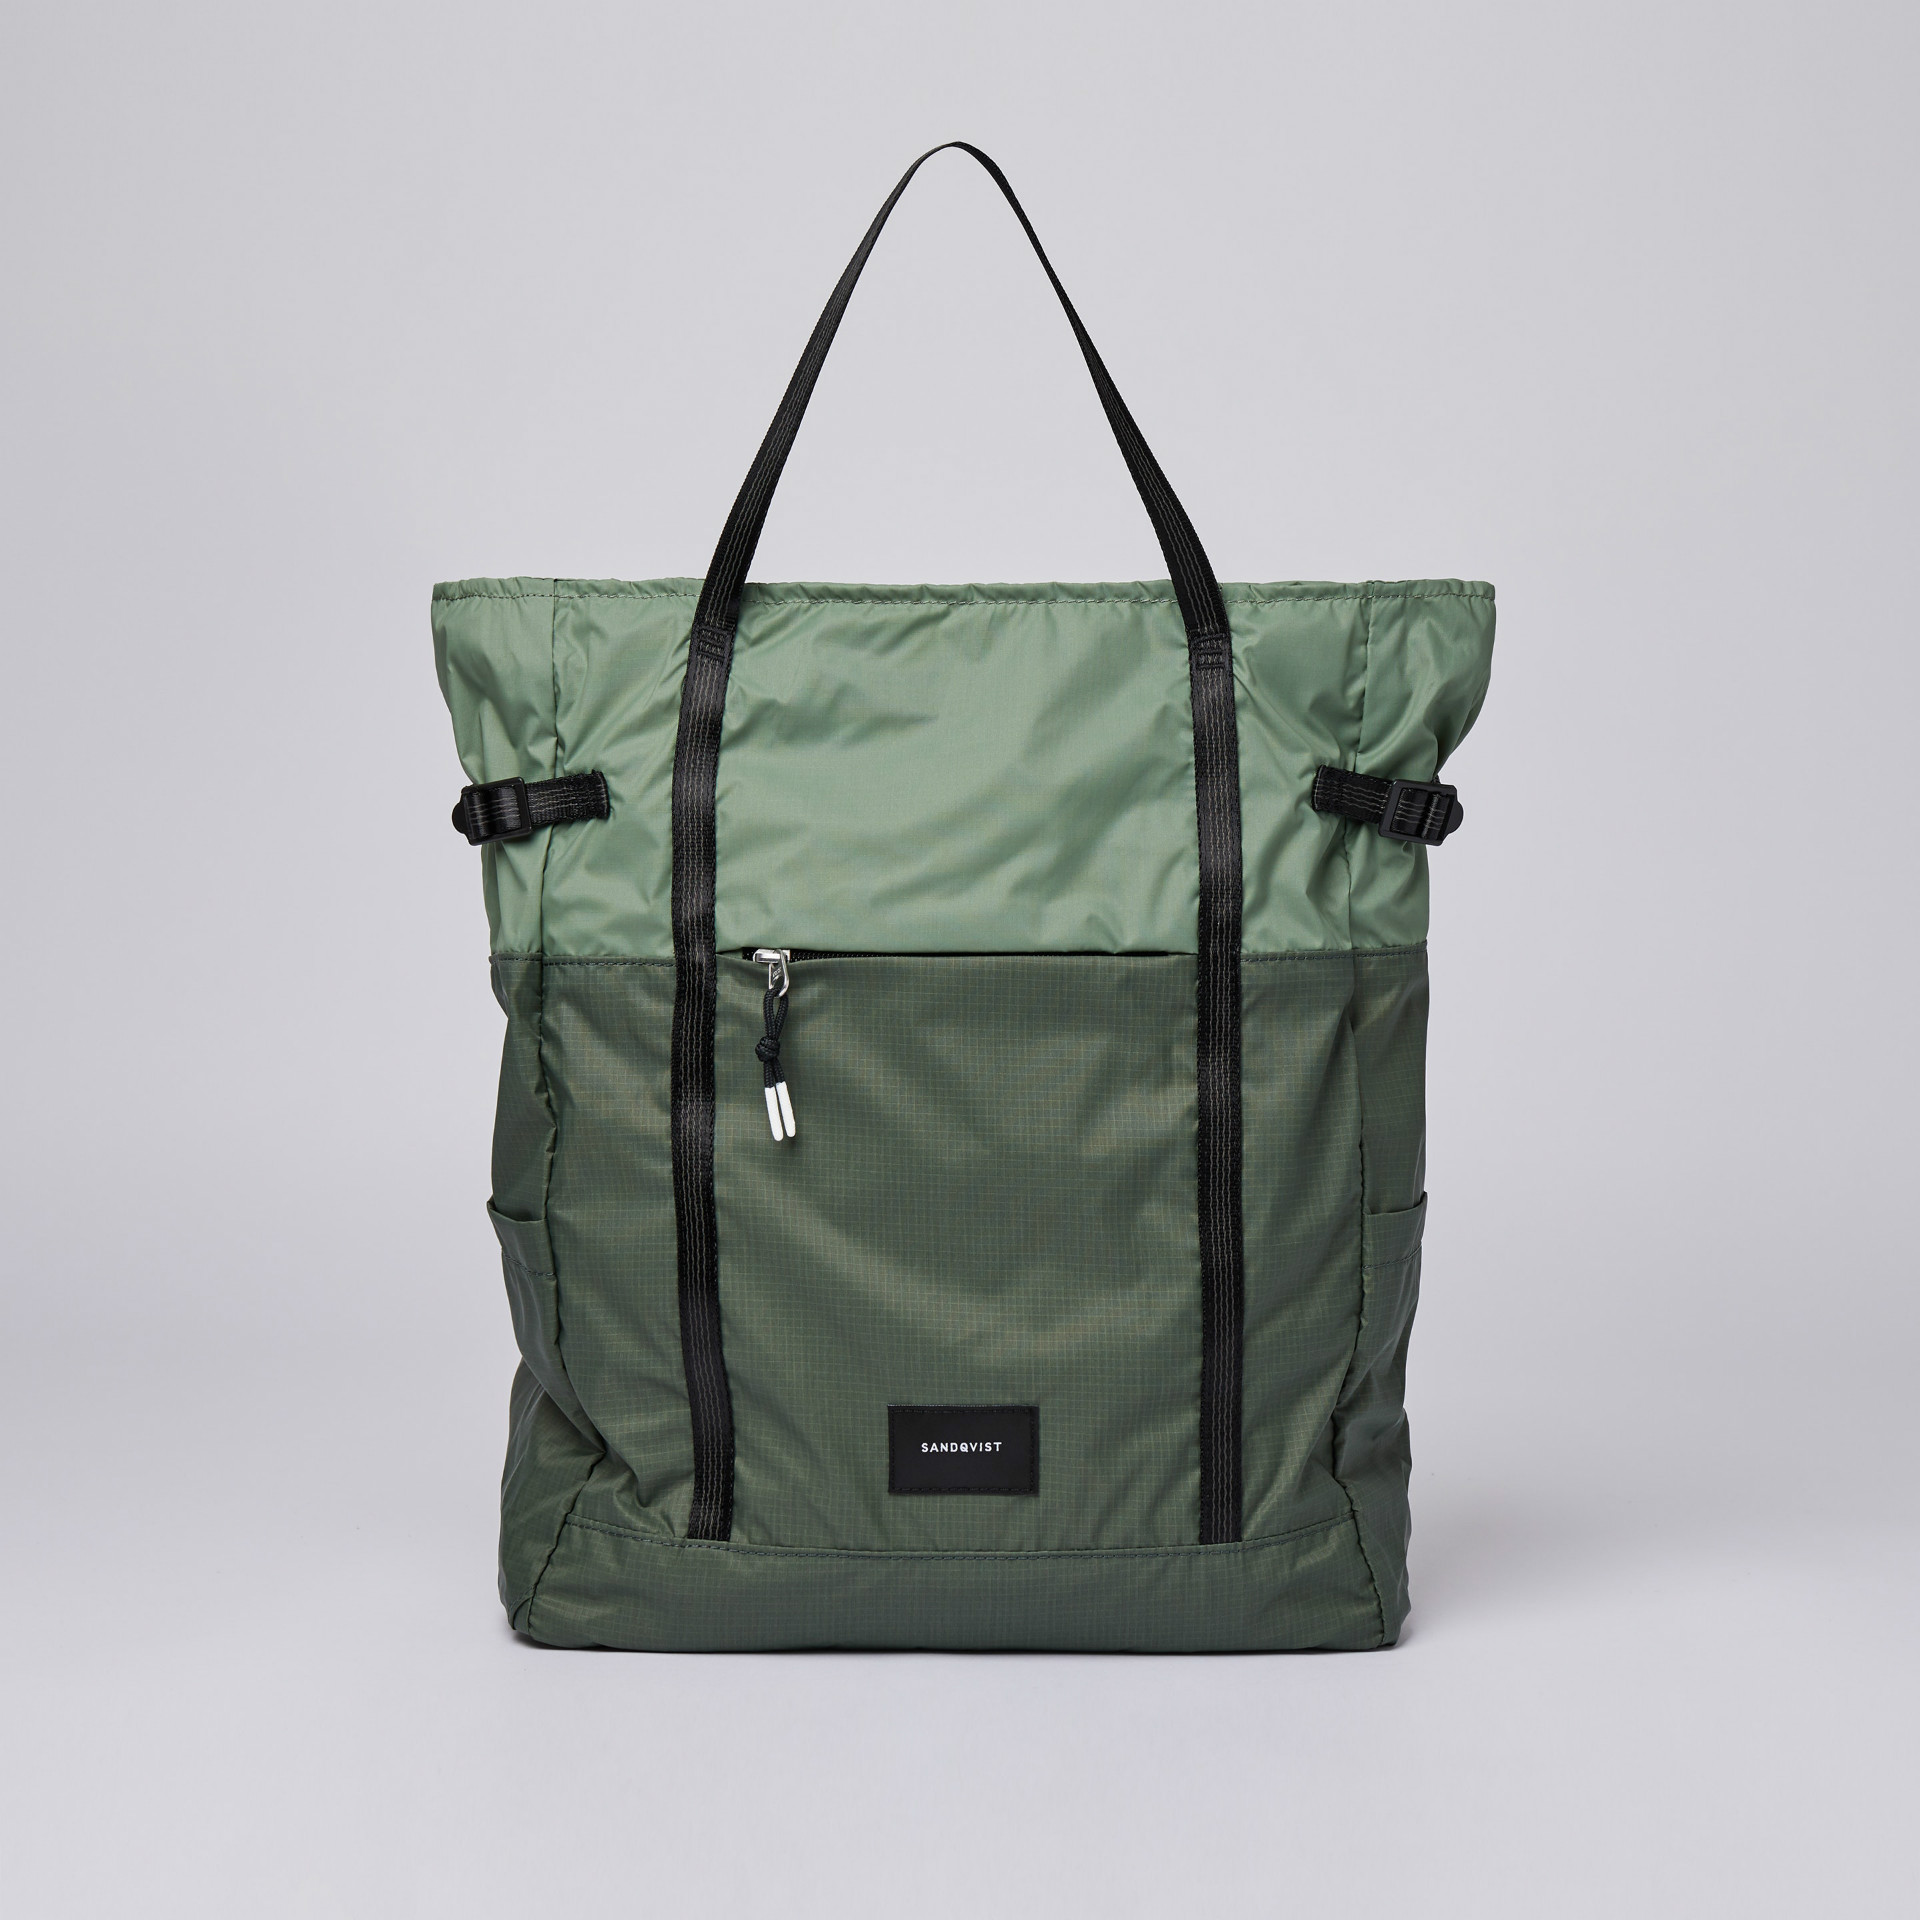 サムネイル:SANDQVIST サンドクヴィスト ROGER LIGHT WEIGHT Multi Dusty green / Night green